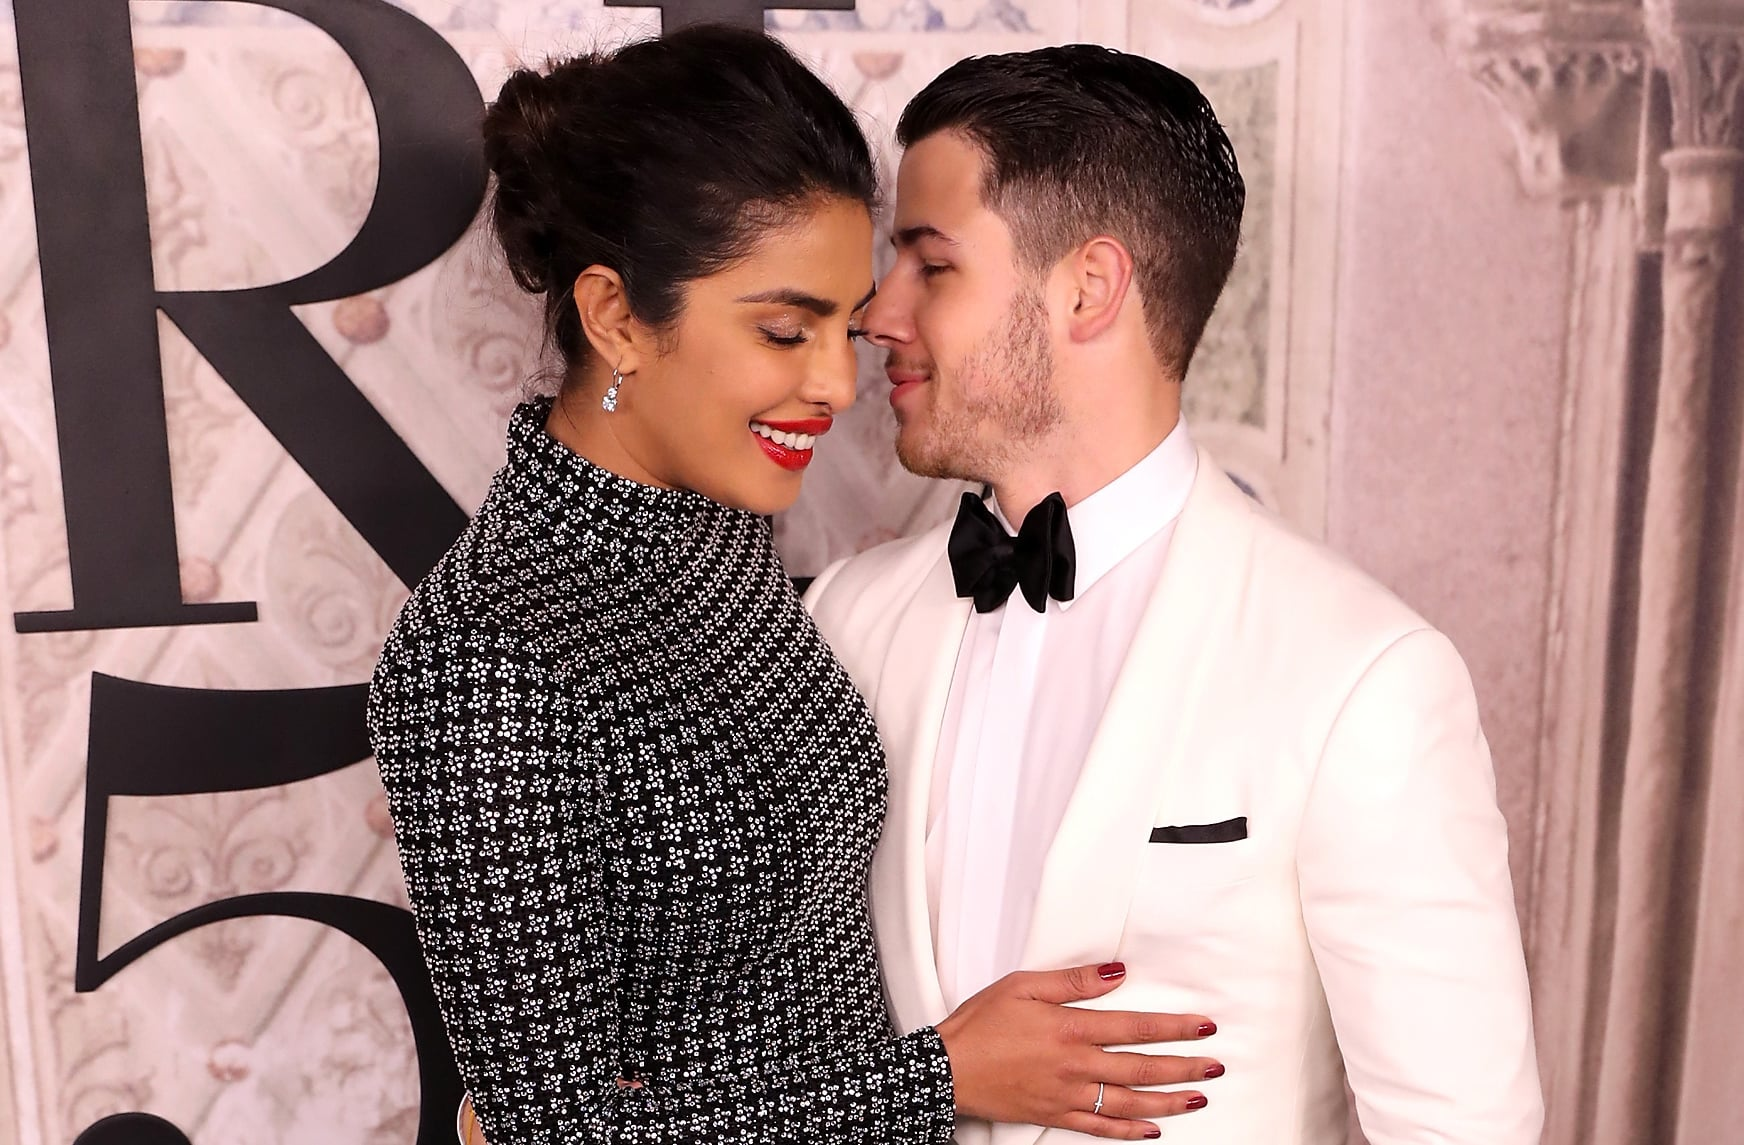 f42191c28a ... of the opposite sex, the guy is usually expected to be older, but  Priyanka Chopra is totally changing up the game. Priyanka's new husband, Nick  Jonas, ...